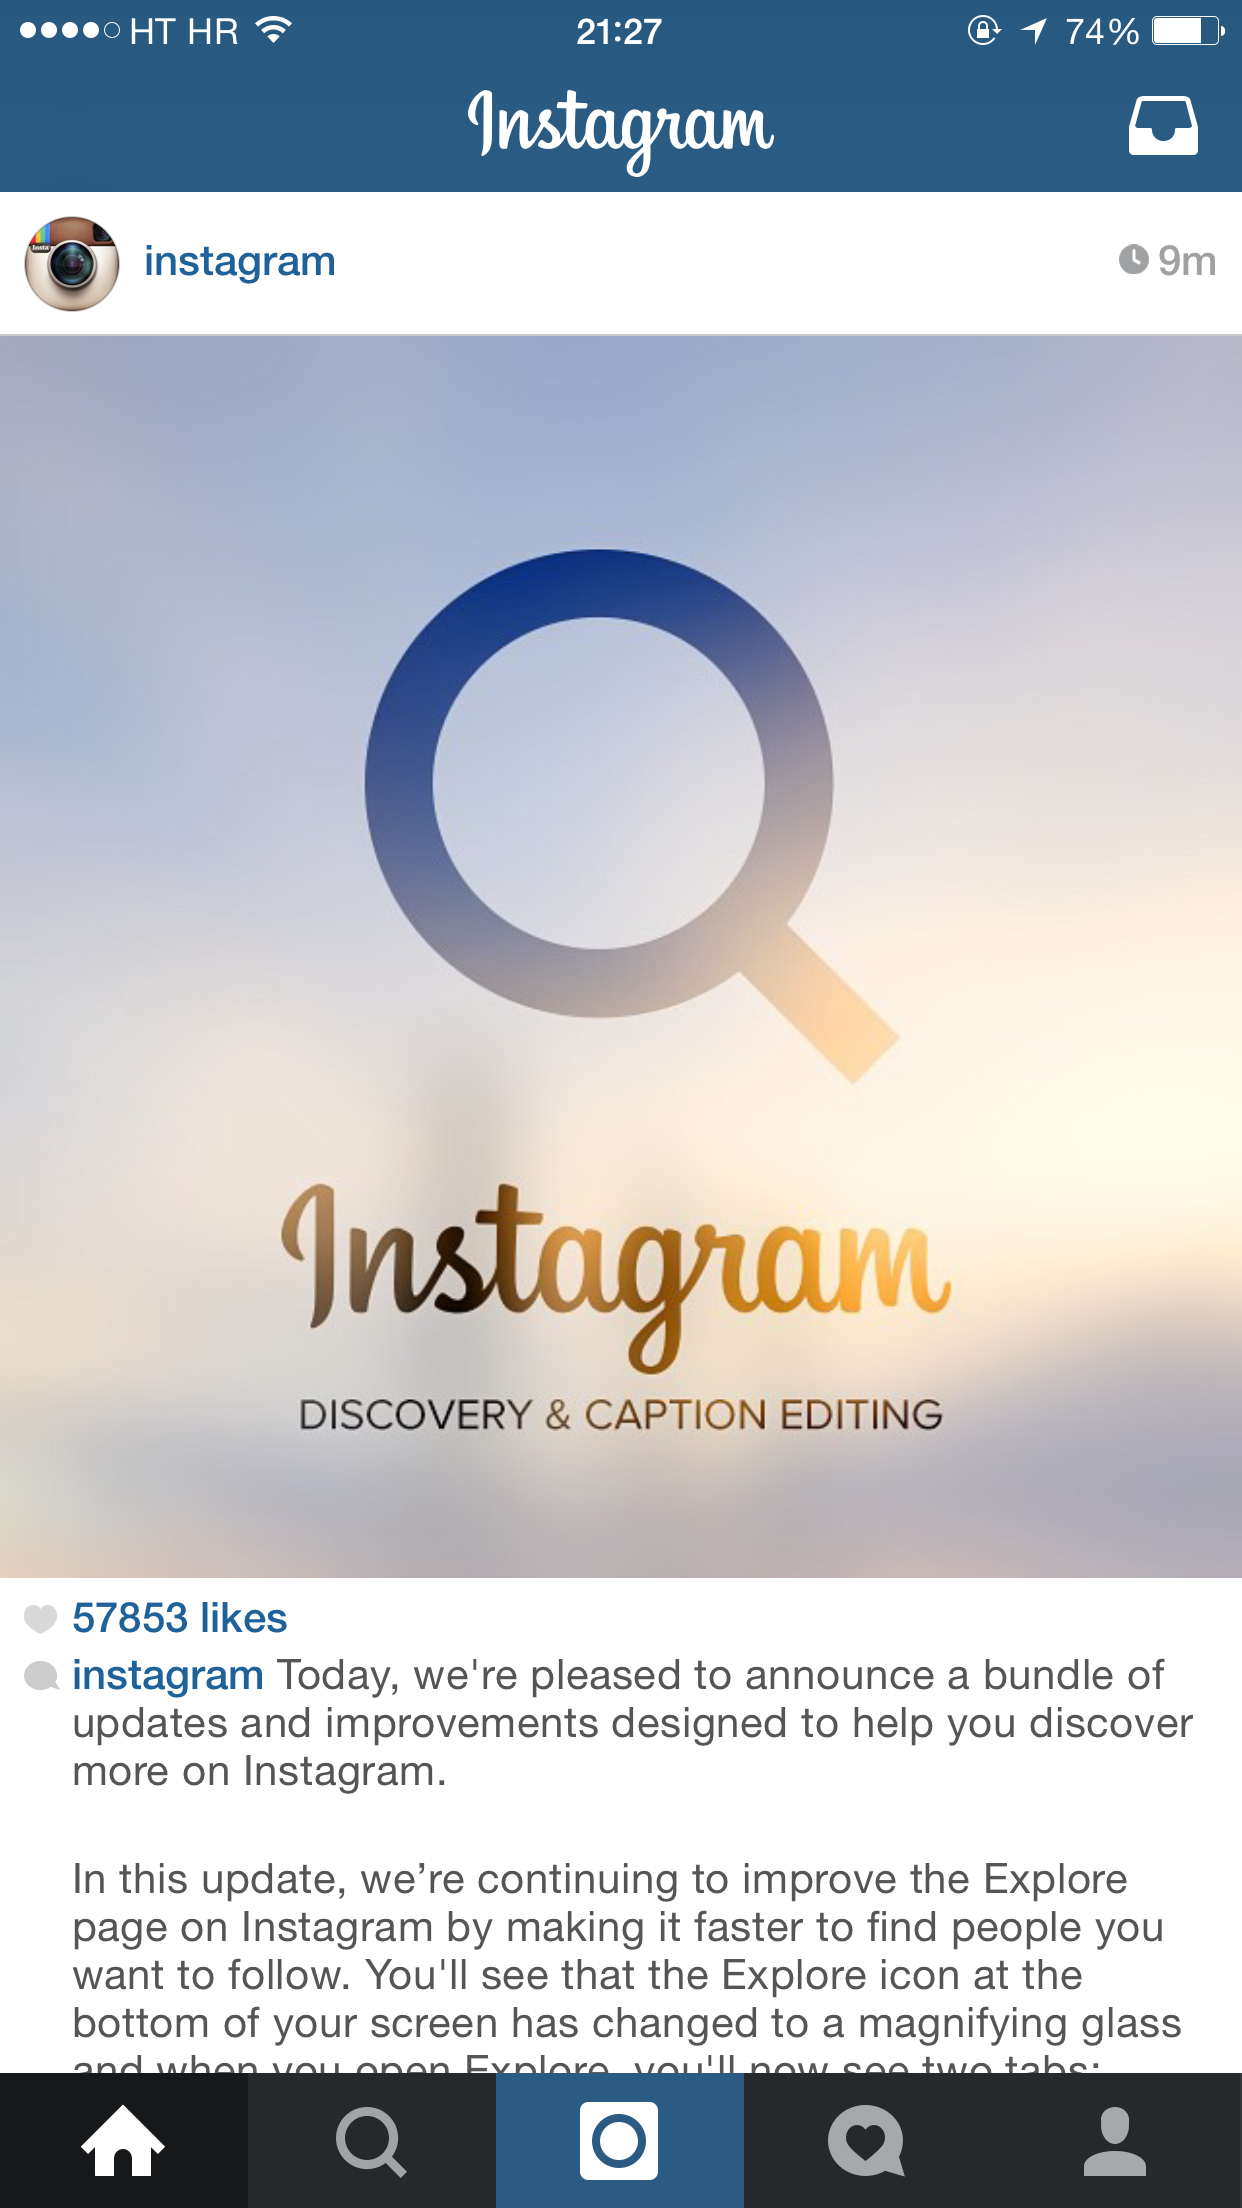 Instagram Updated With Caption Editing, People Finder